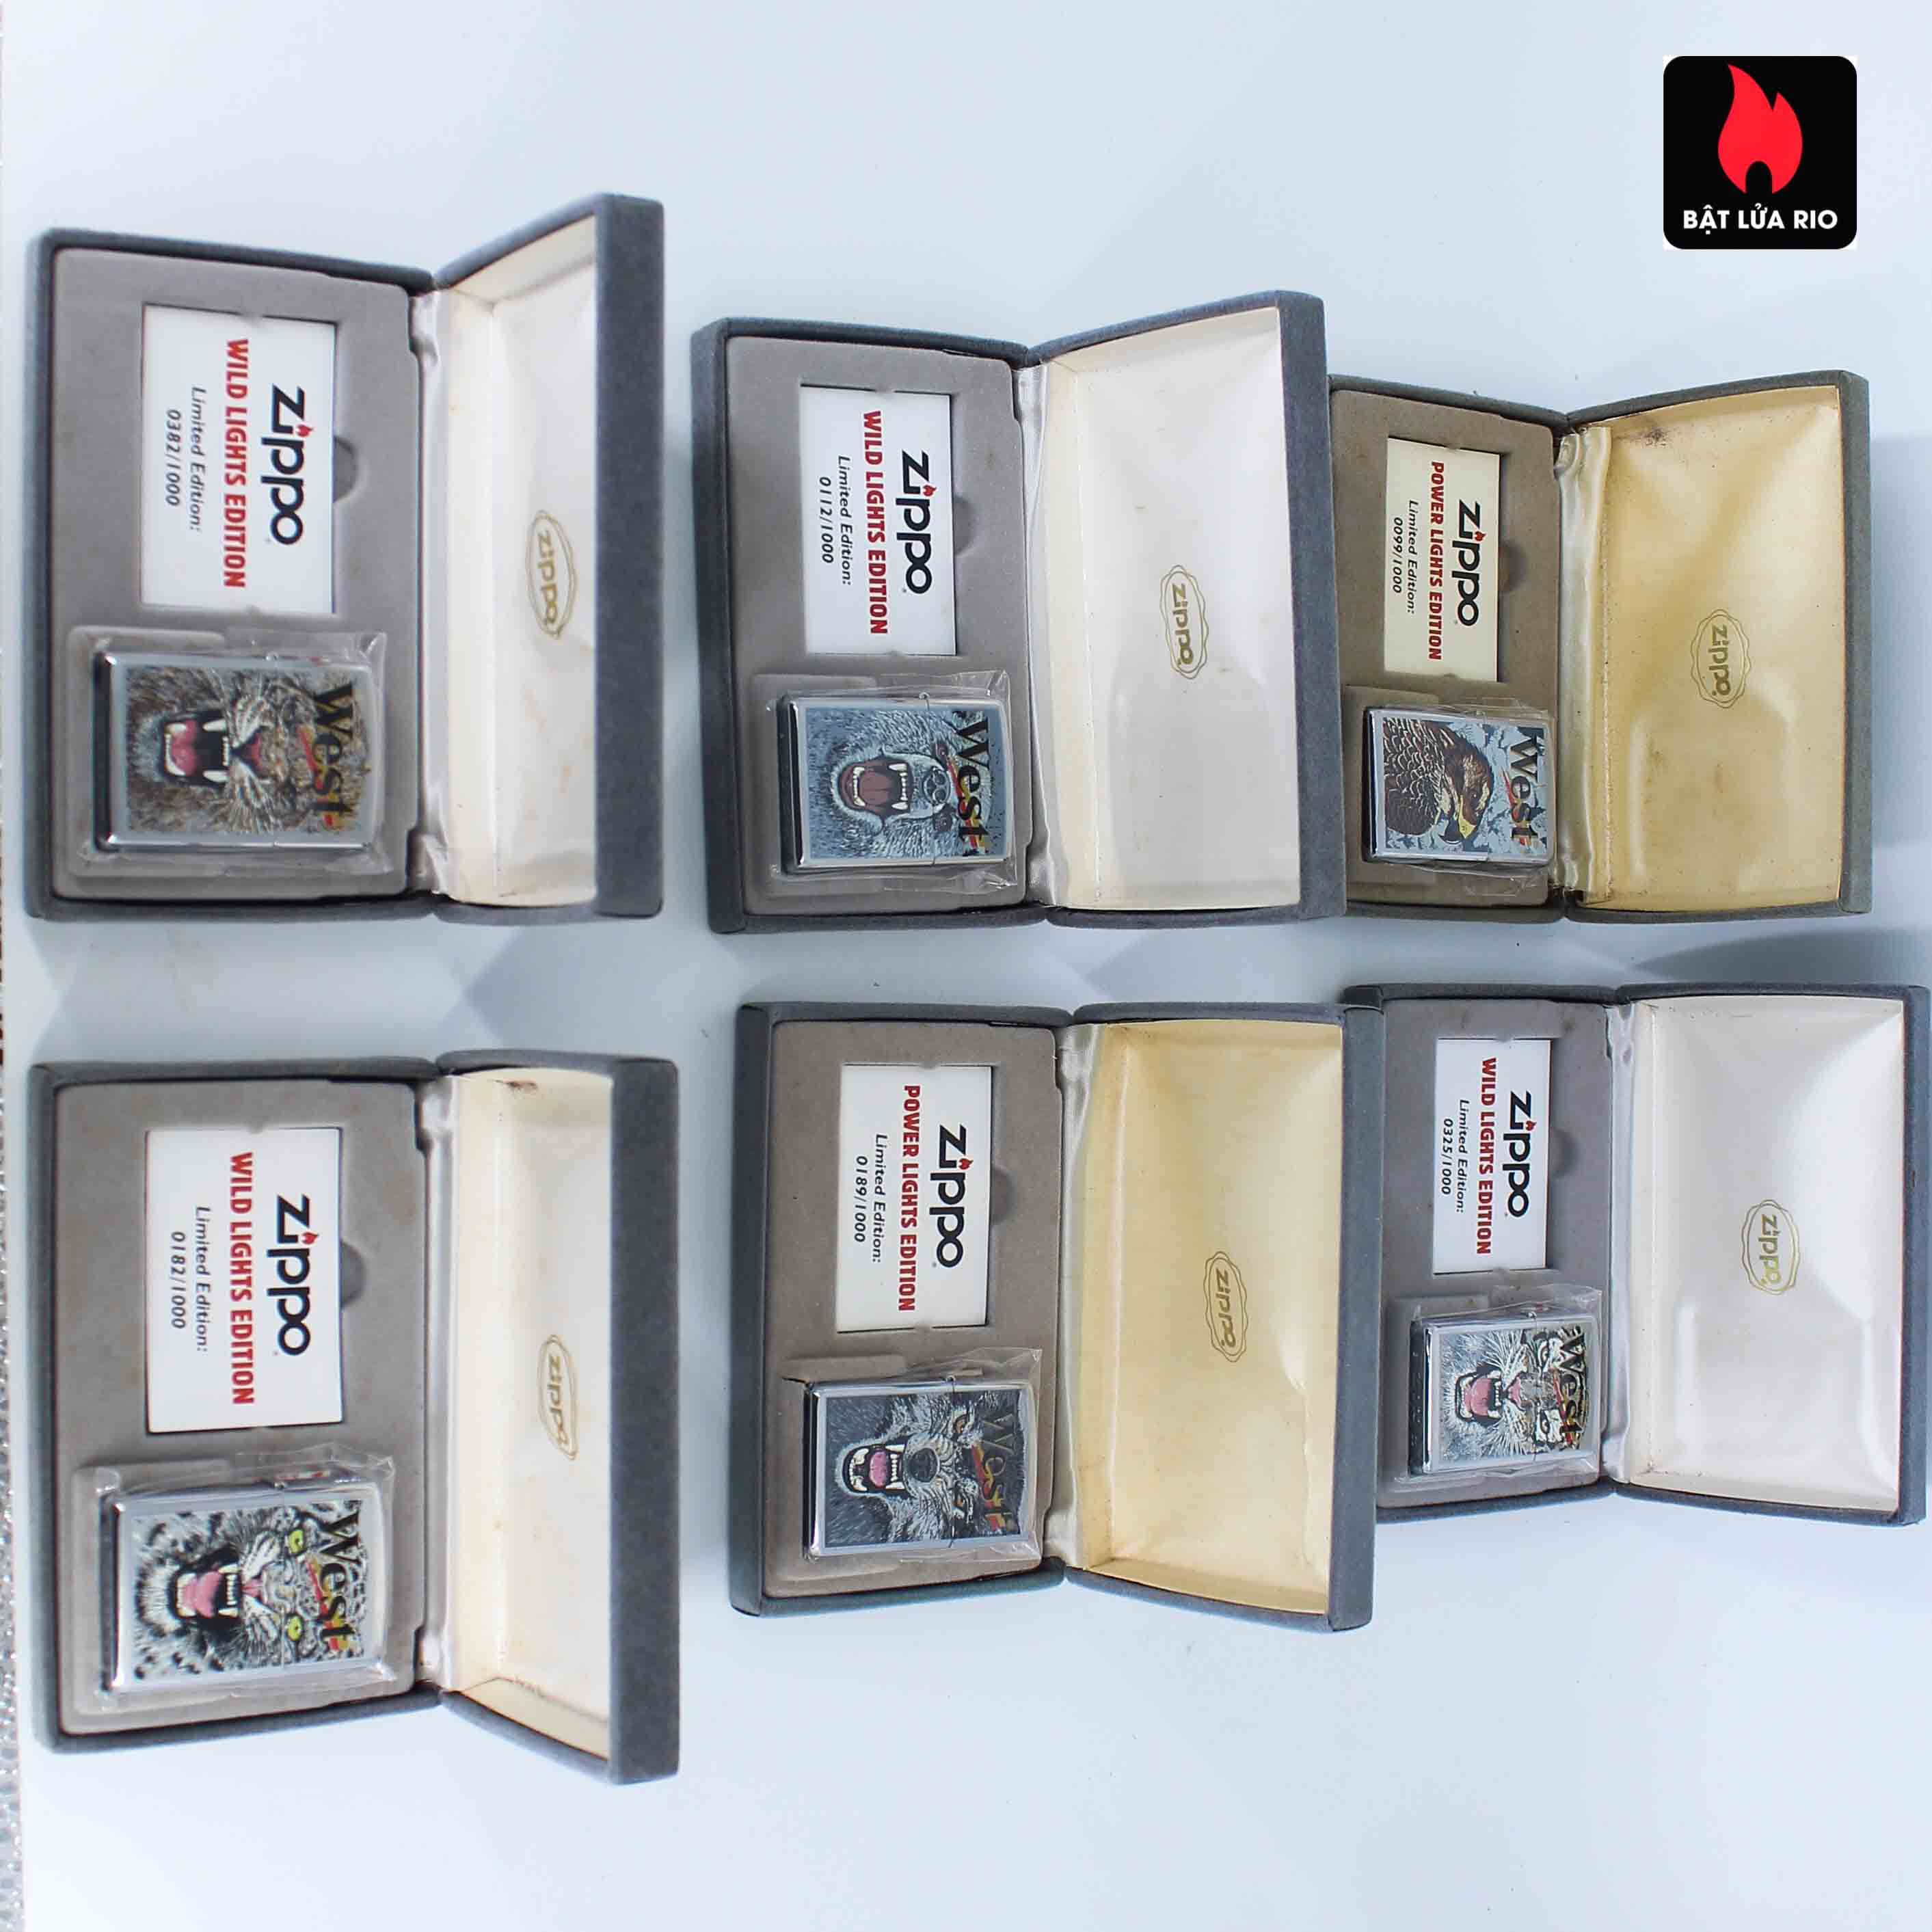 Zippo 2001 - Wild Lighters Edition - Limited Edition /1000 2